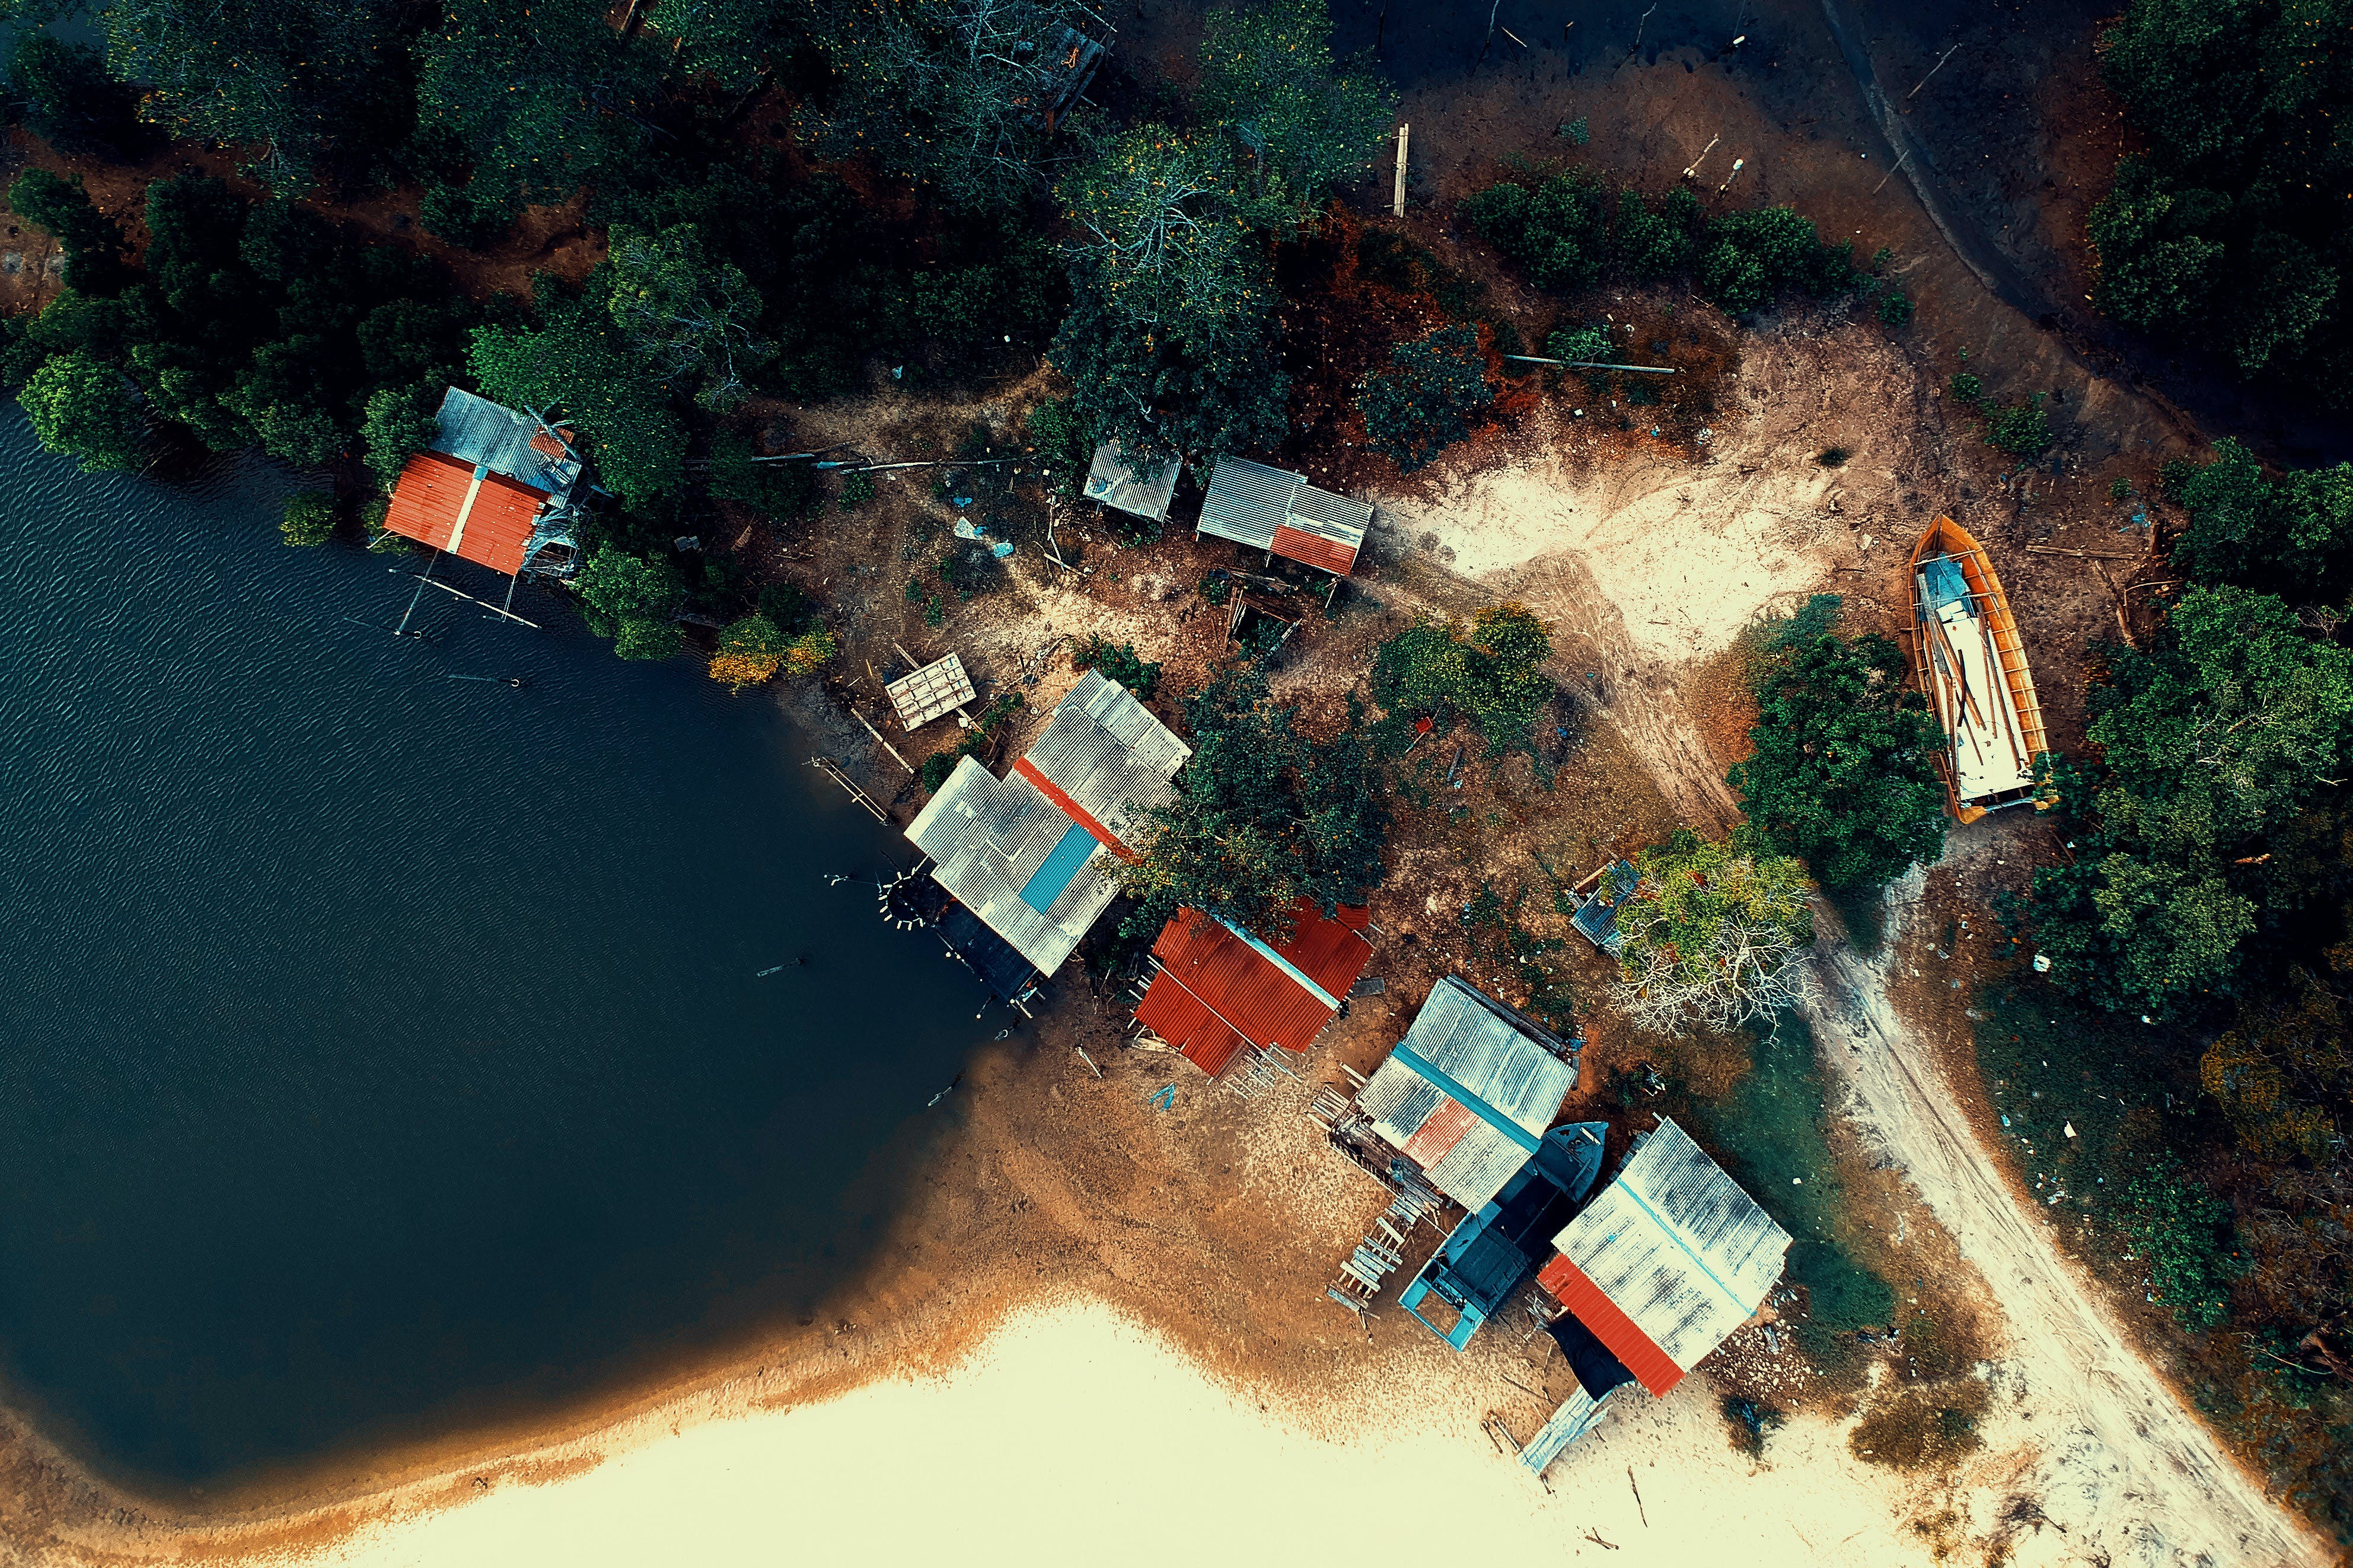 Aerial Photography of Building Beside Trees and Body of Water